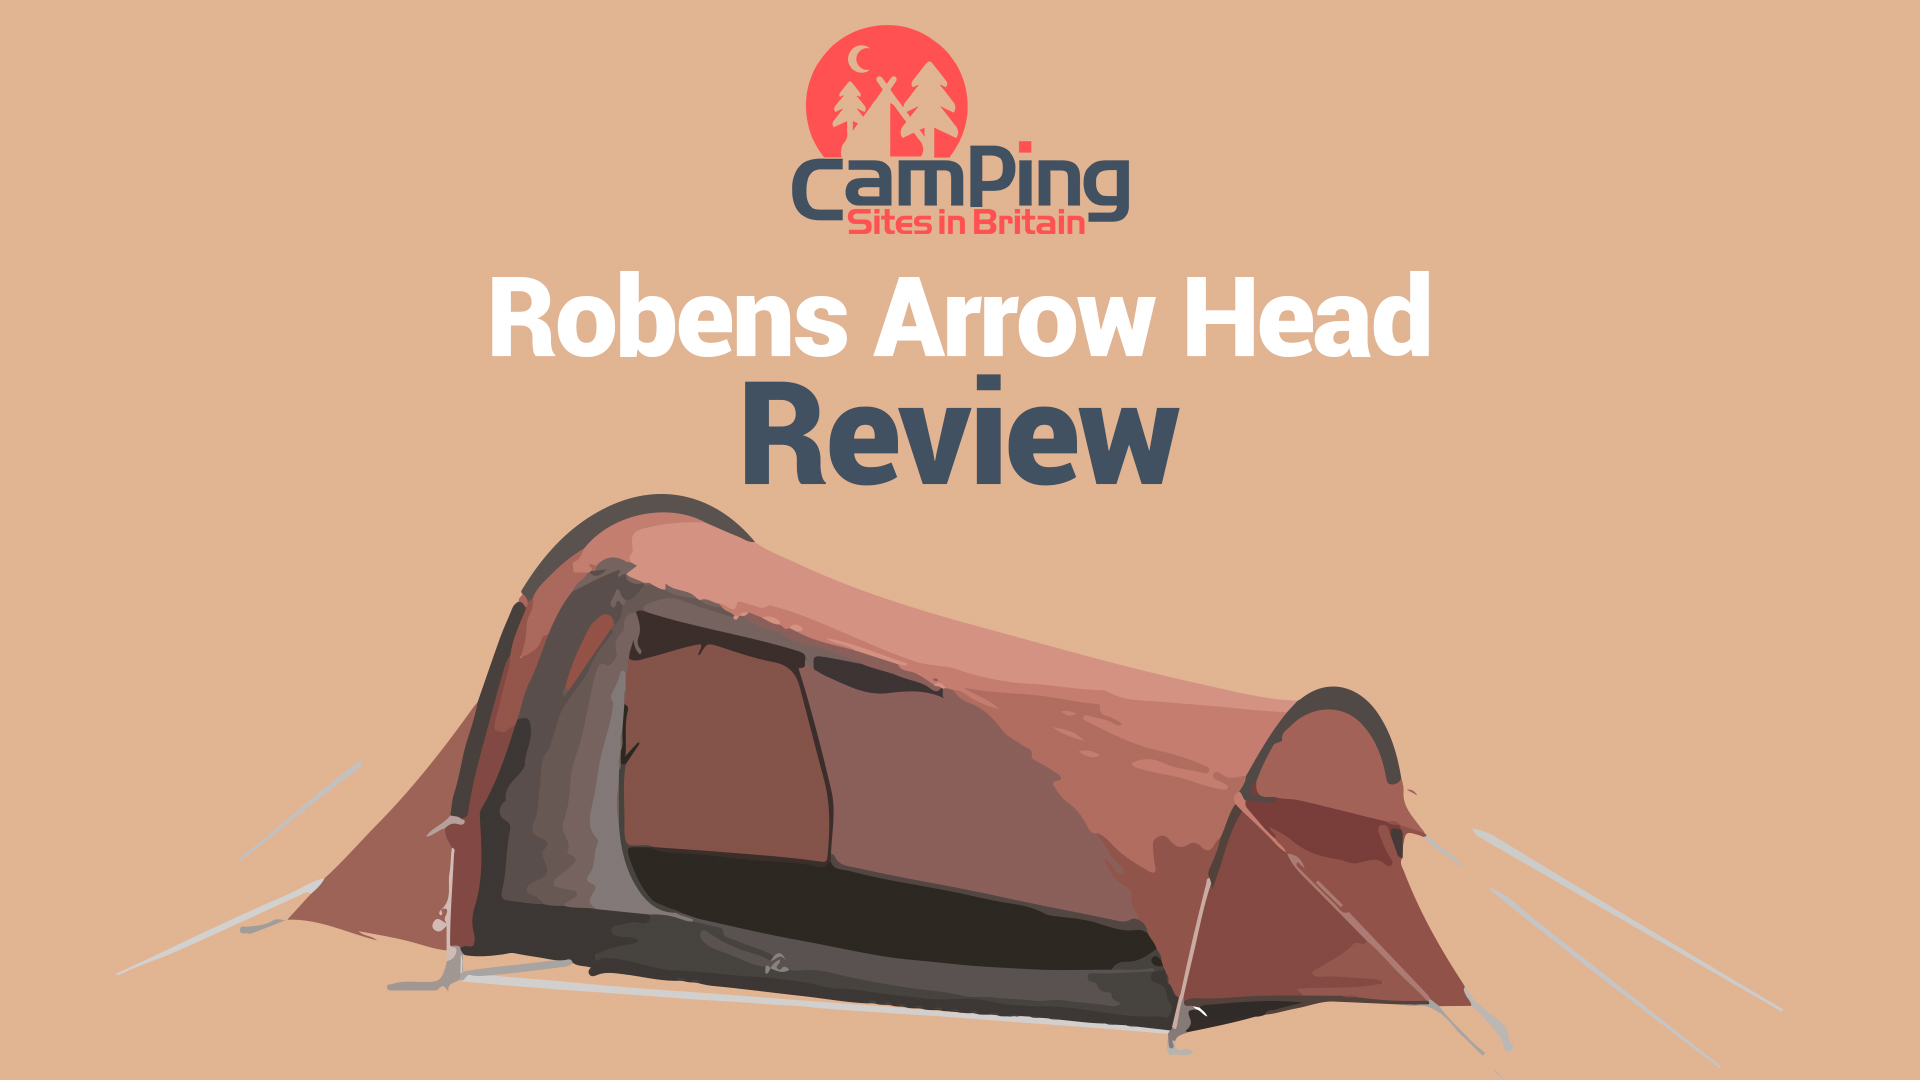 Robens Arrow Head Review - Everything You Should Know